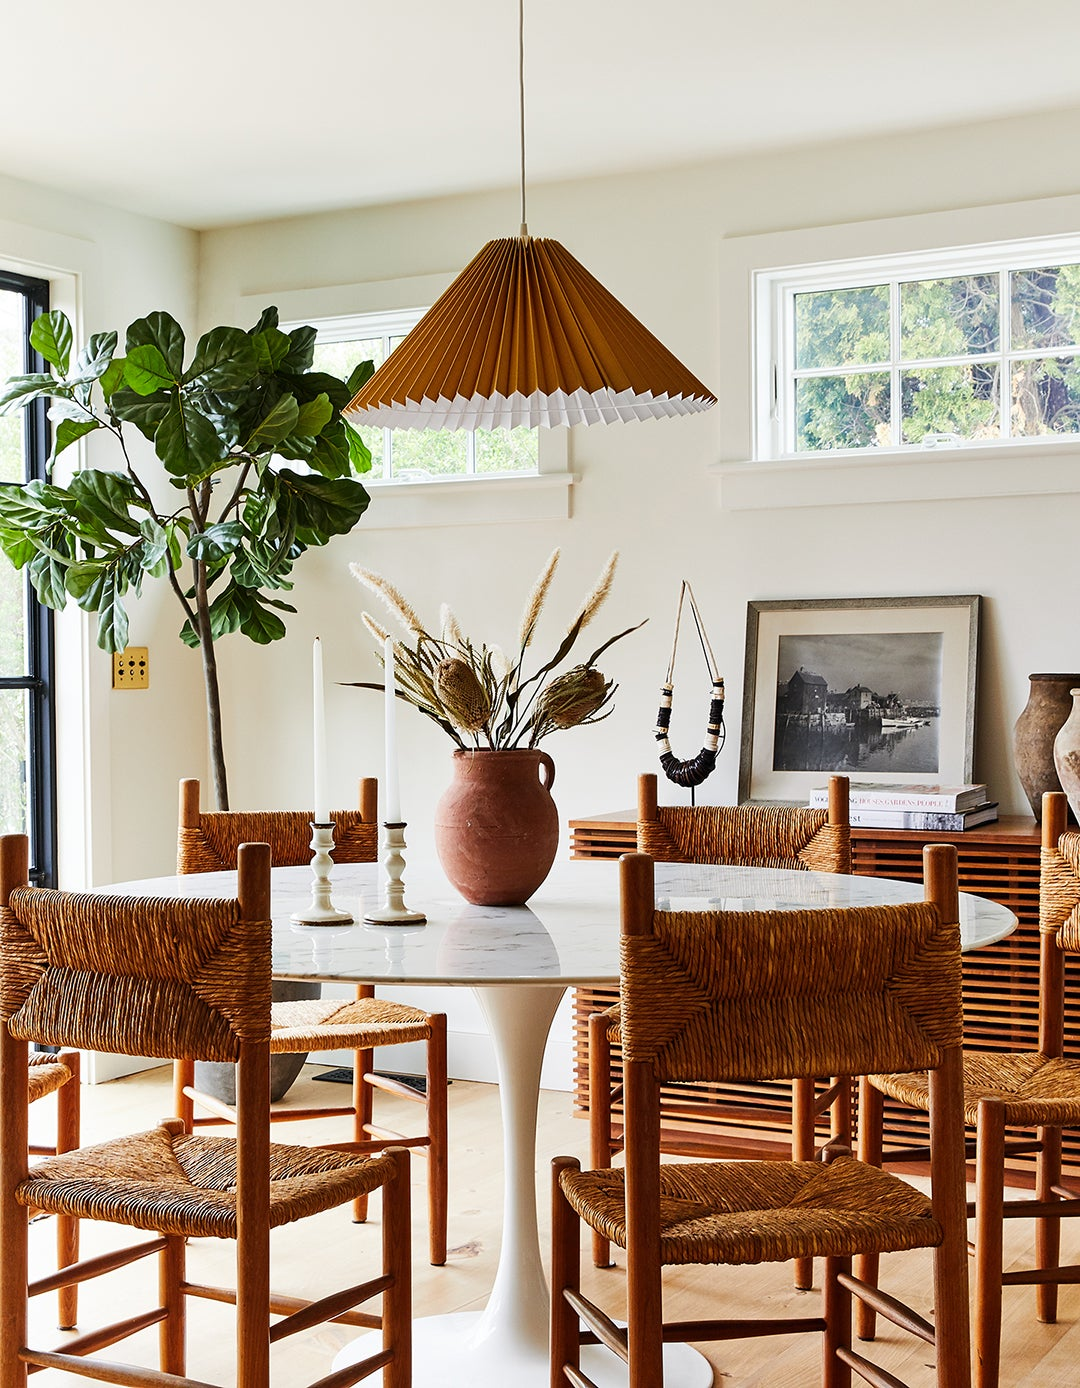 dining room with woven chairs